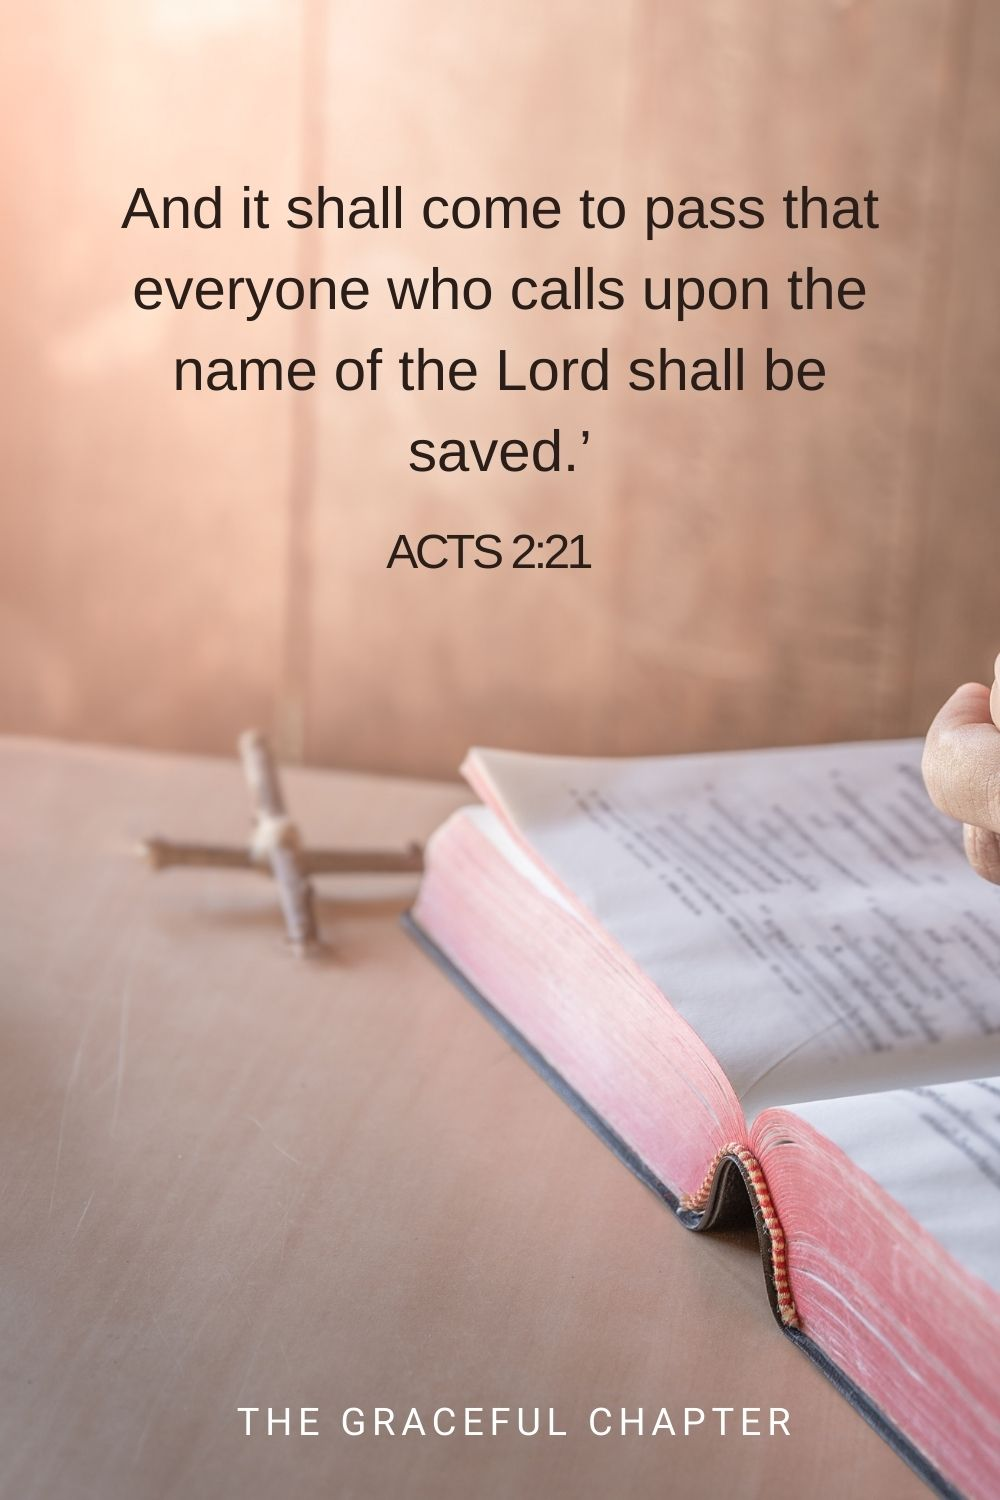 And it shall come to pass that everyone who calls upon the name of the Lord shall be saved.' Acts 2:21